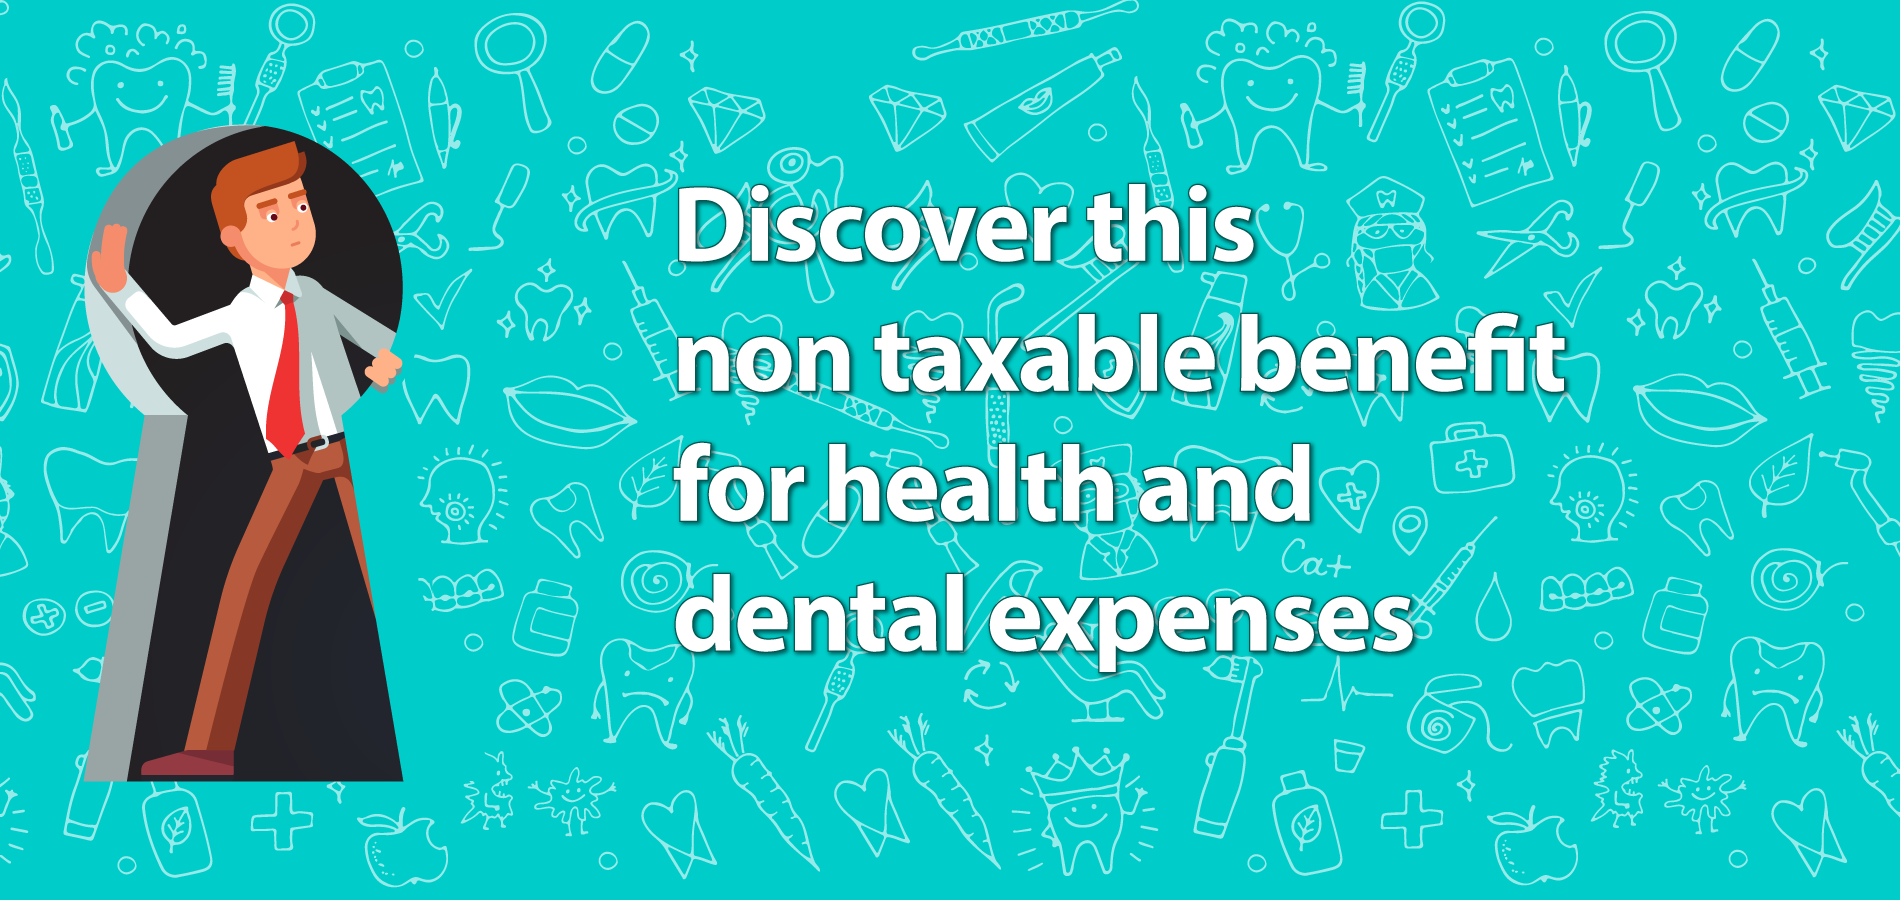 Discover this non taxable benefit for health and dental expenses